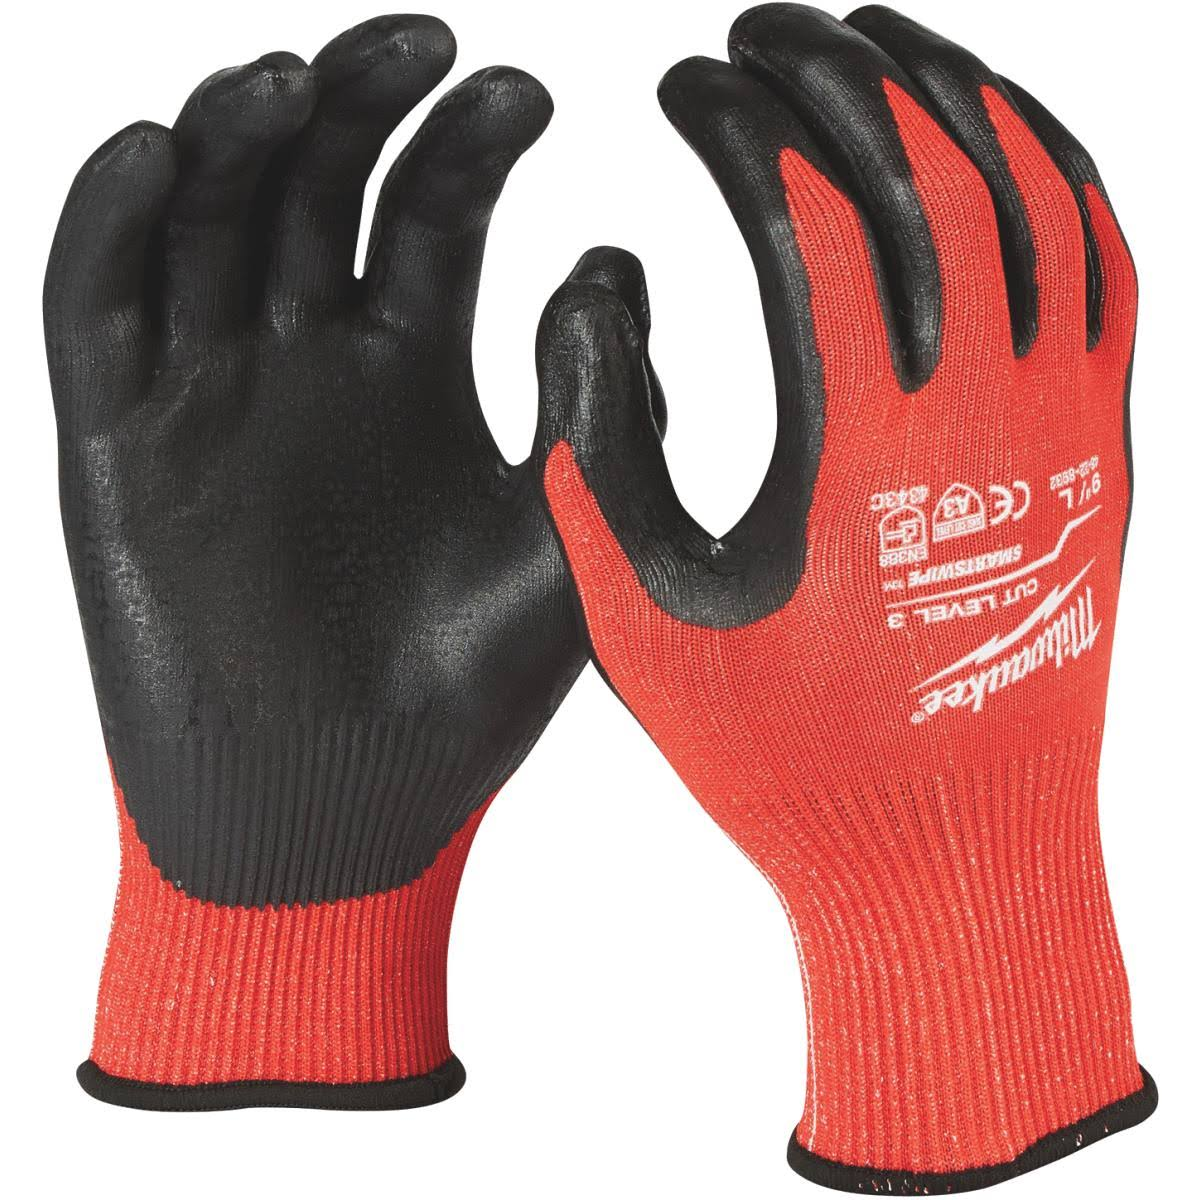 Milwaukee Cut Level 3 Dipped Work Gloves - Red, X-Large